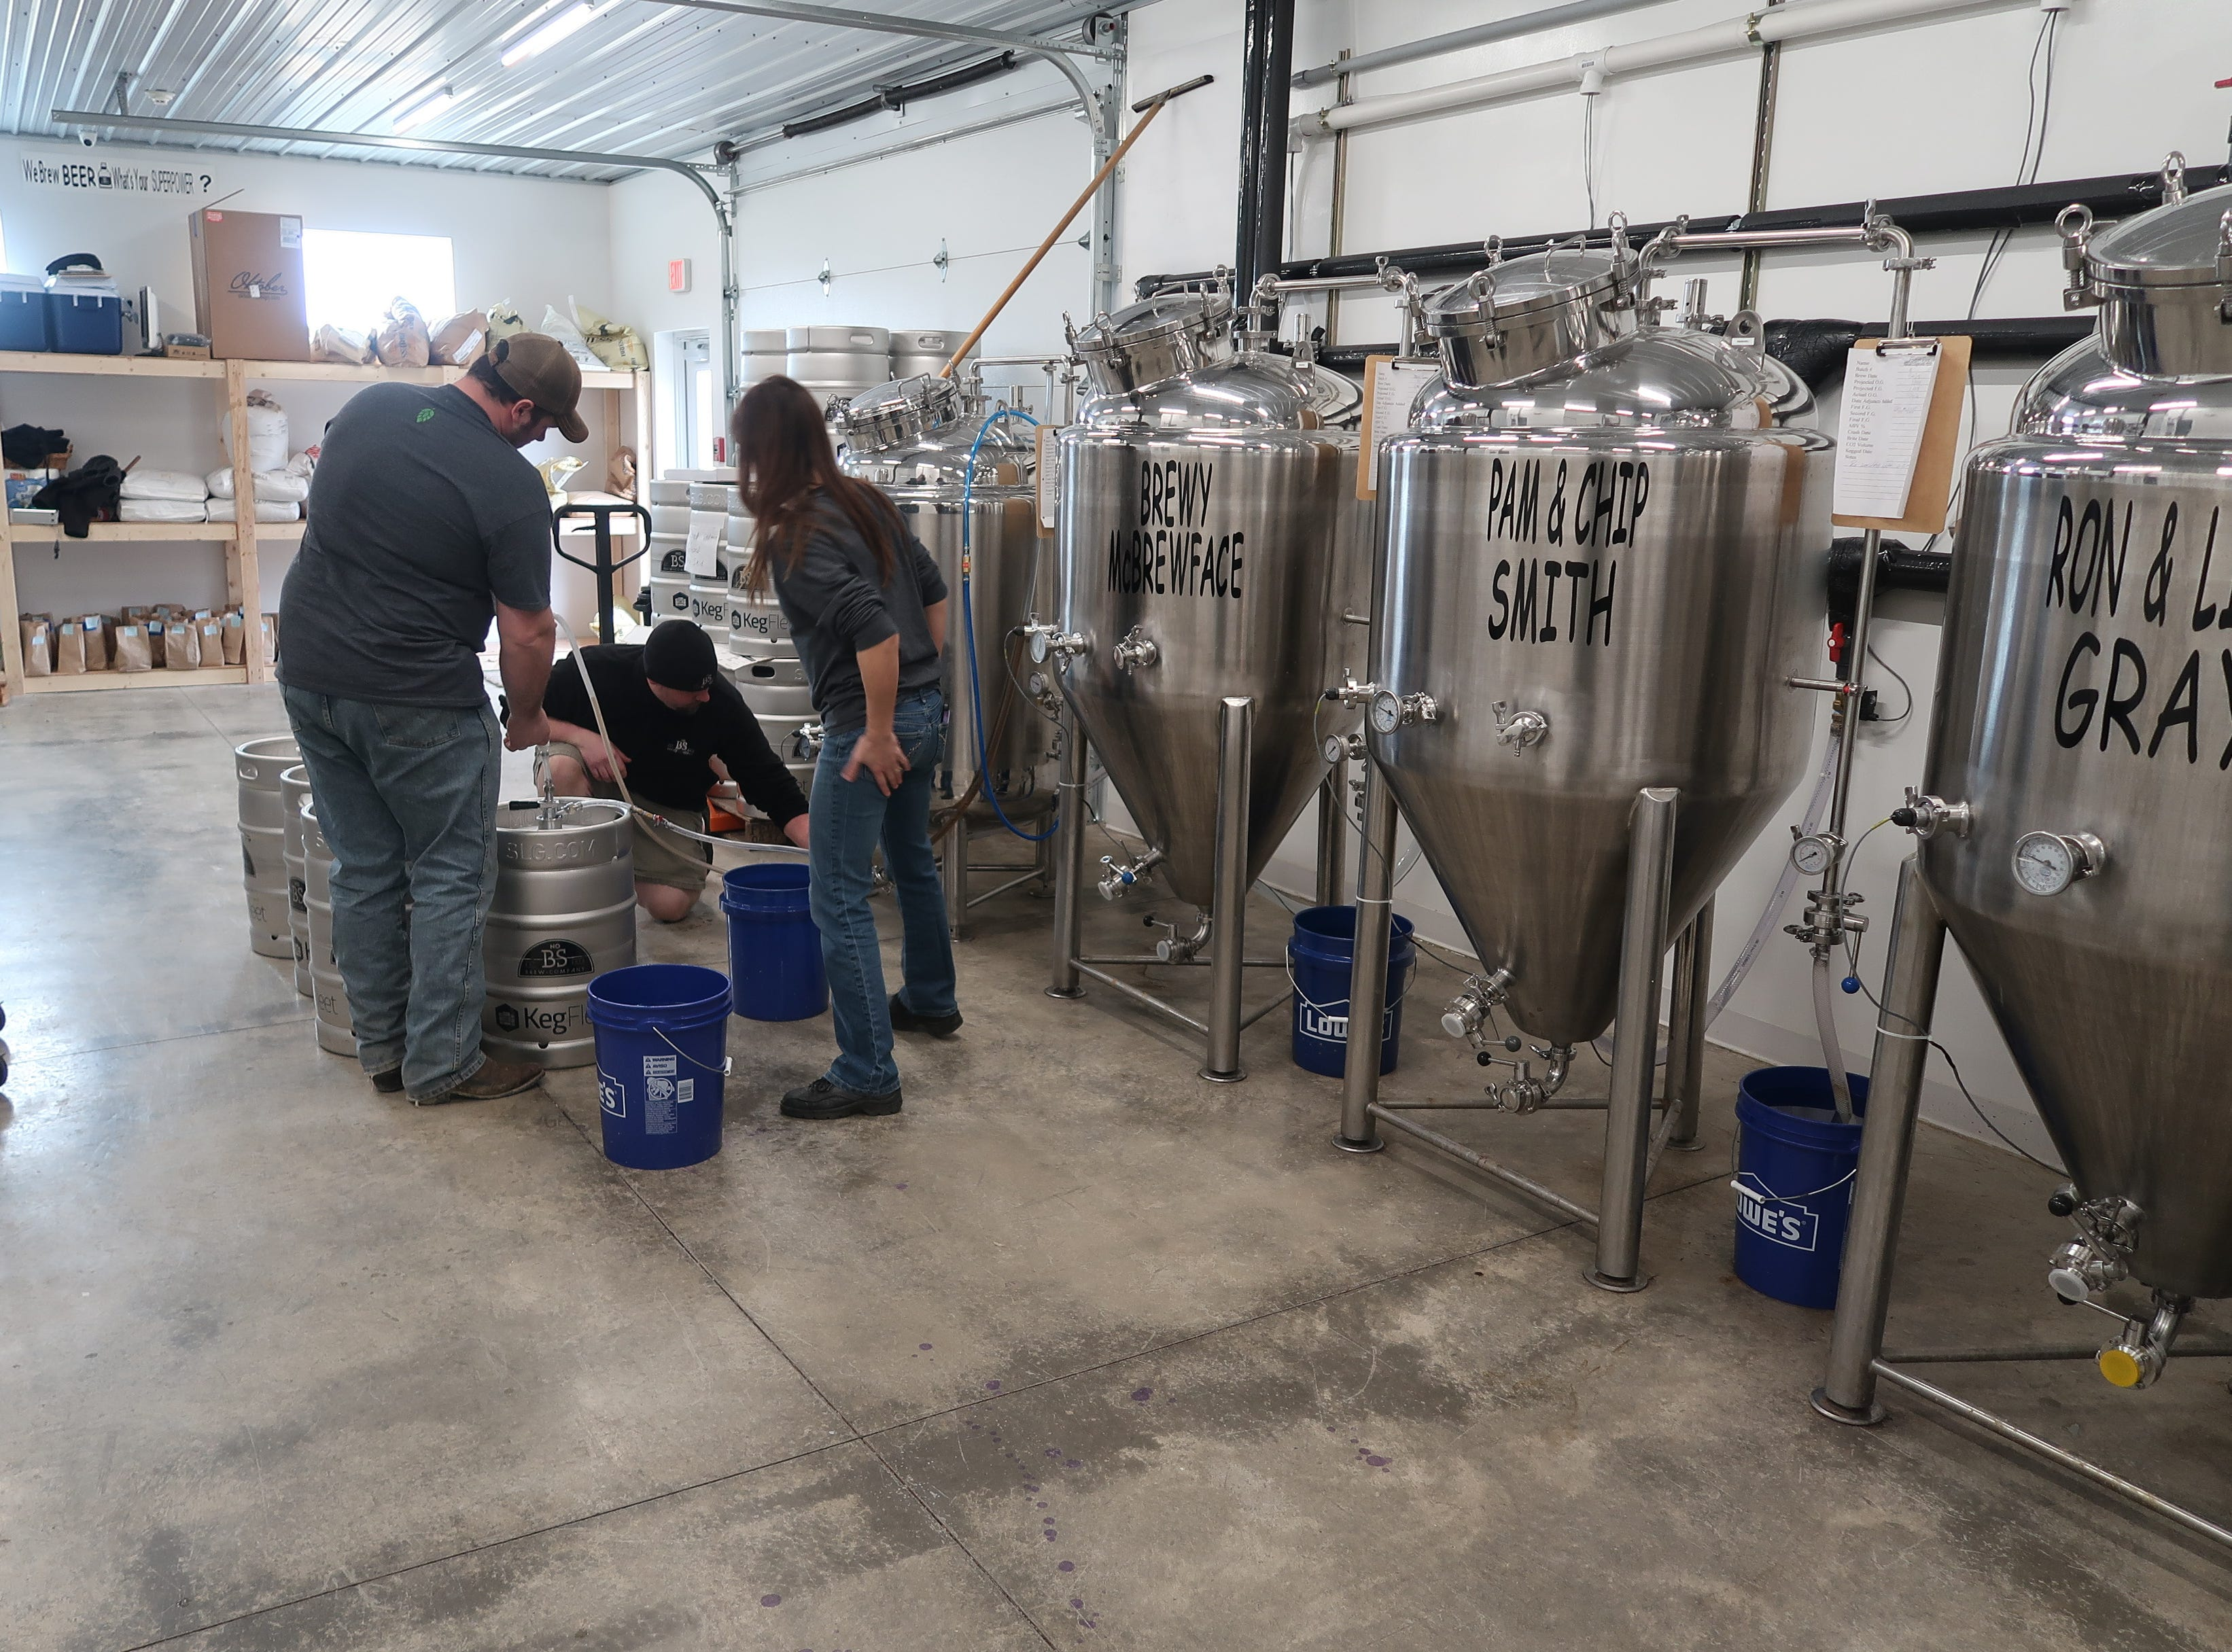 Owner and brewer Ben Noragong, center, gets ready to keg beer at No BS Brew Company in Livonia.